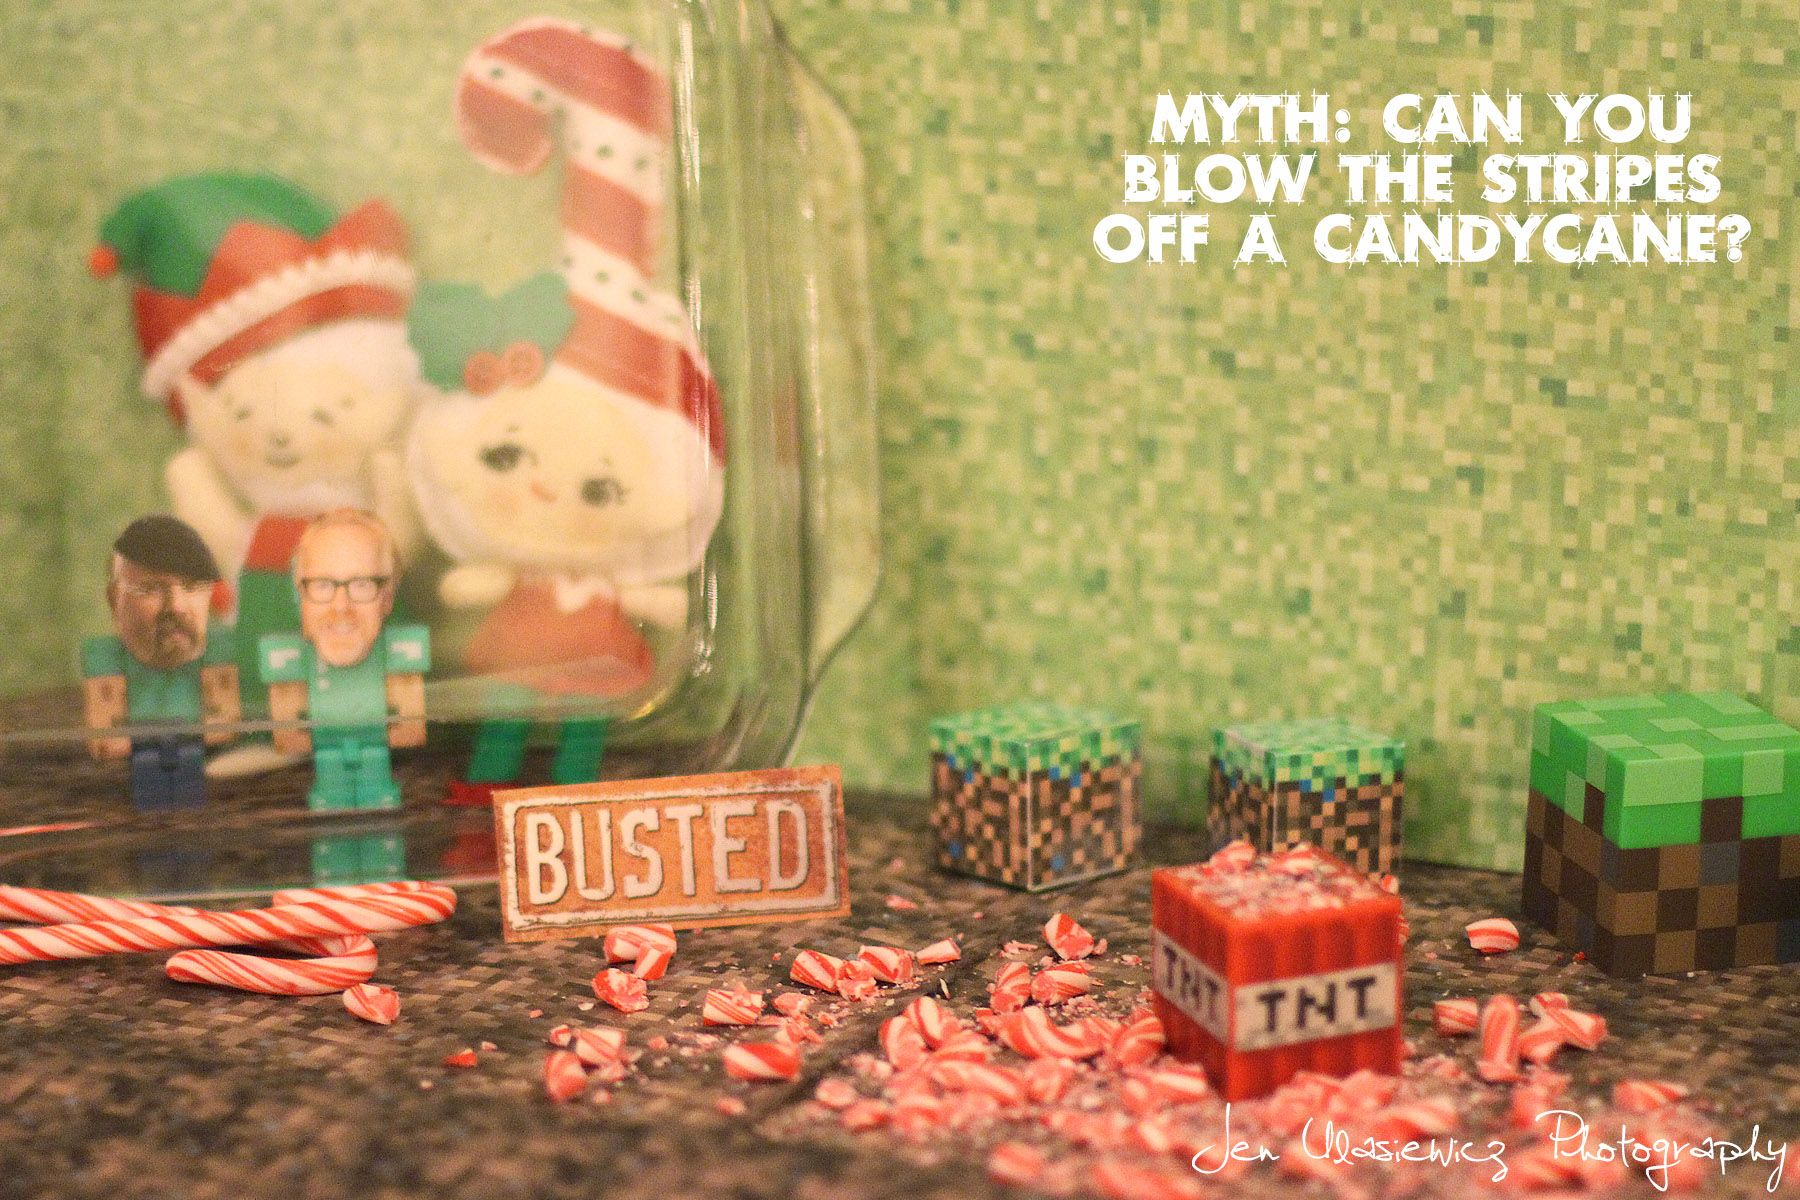 fiona and jingle elf on the shelf minecraft mythbusters fiona and jingle pinterest elves and elf ideas - Mythbusters Christmas Tree